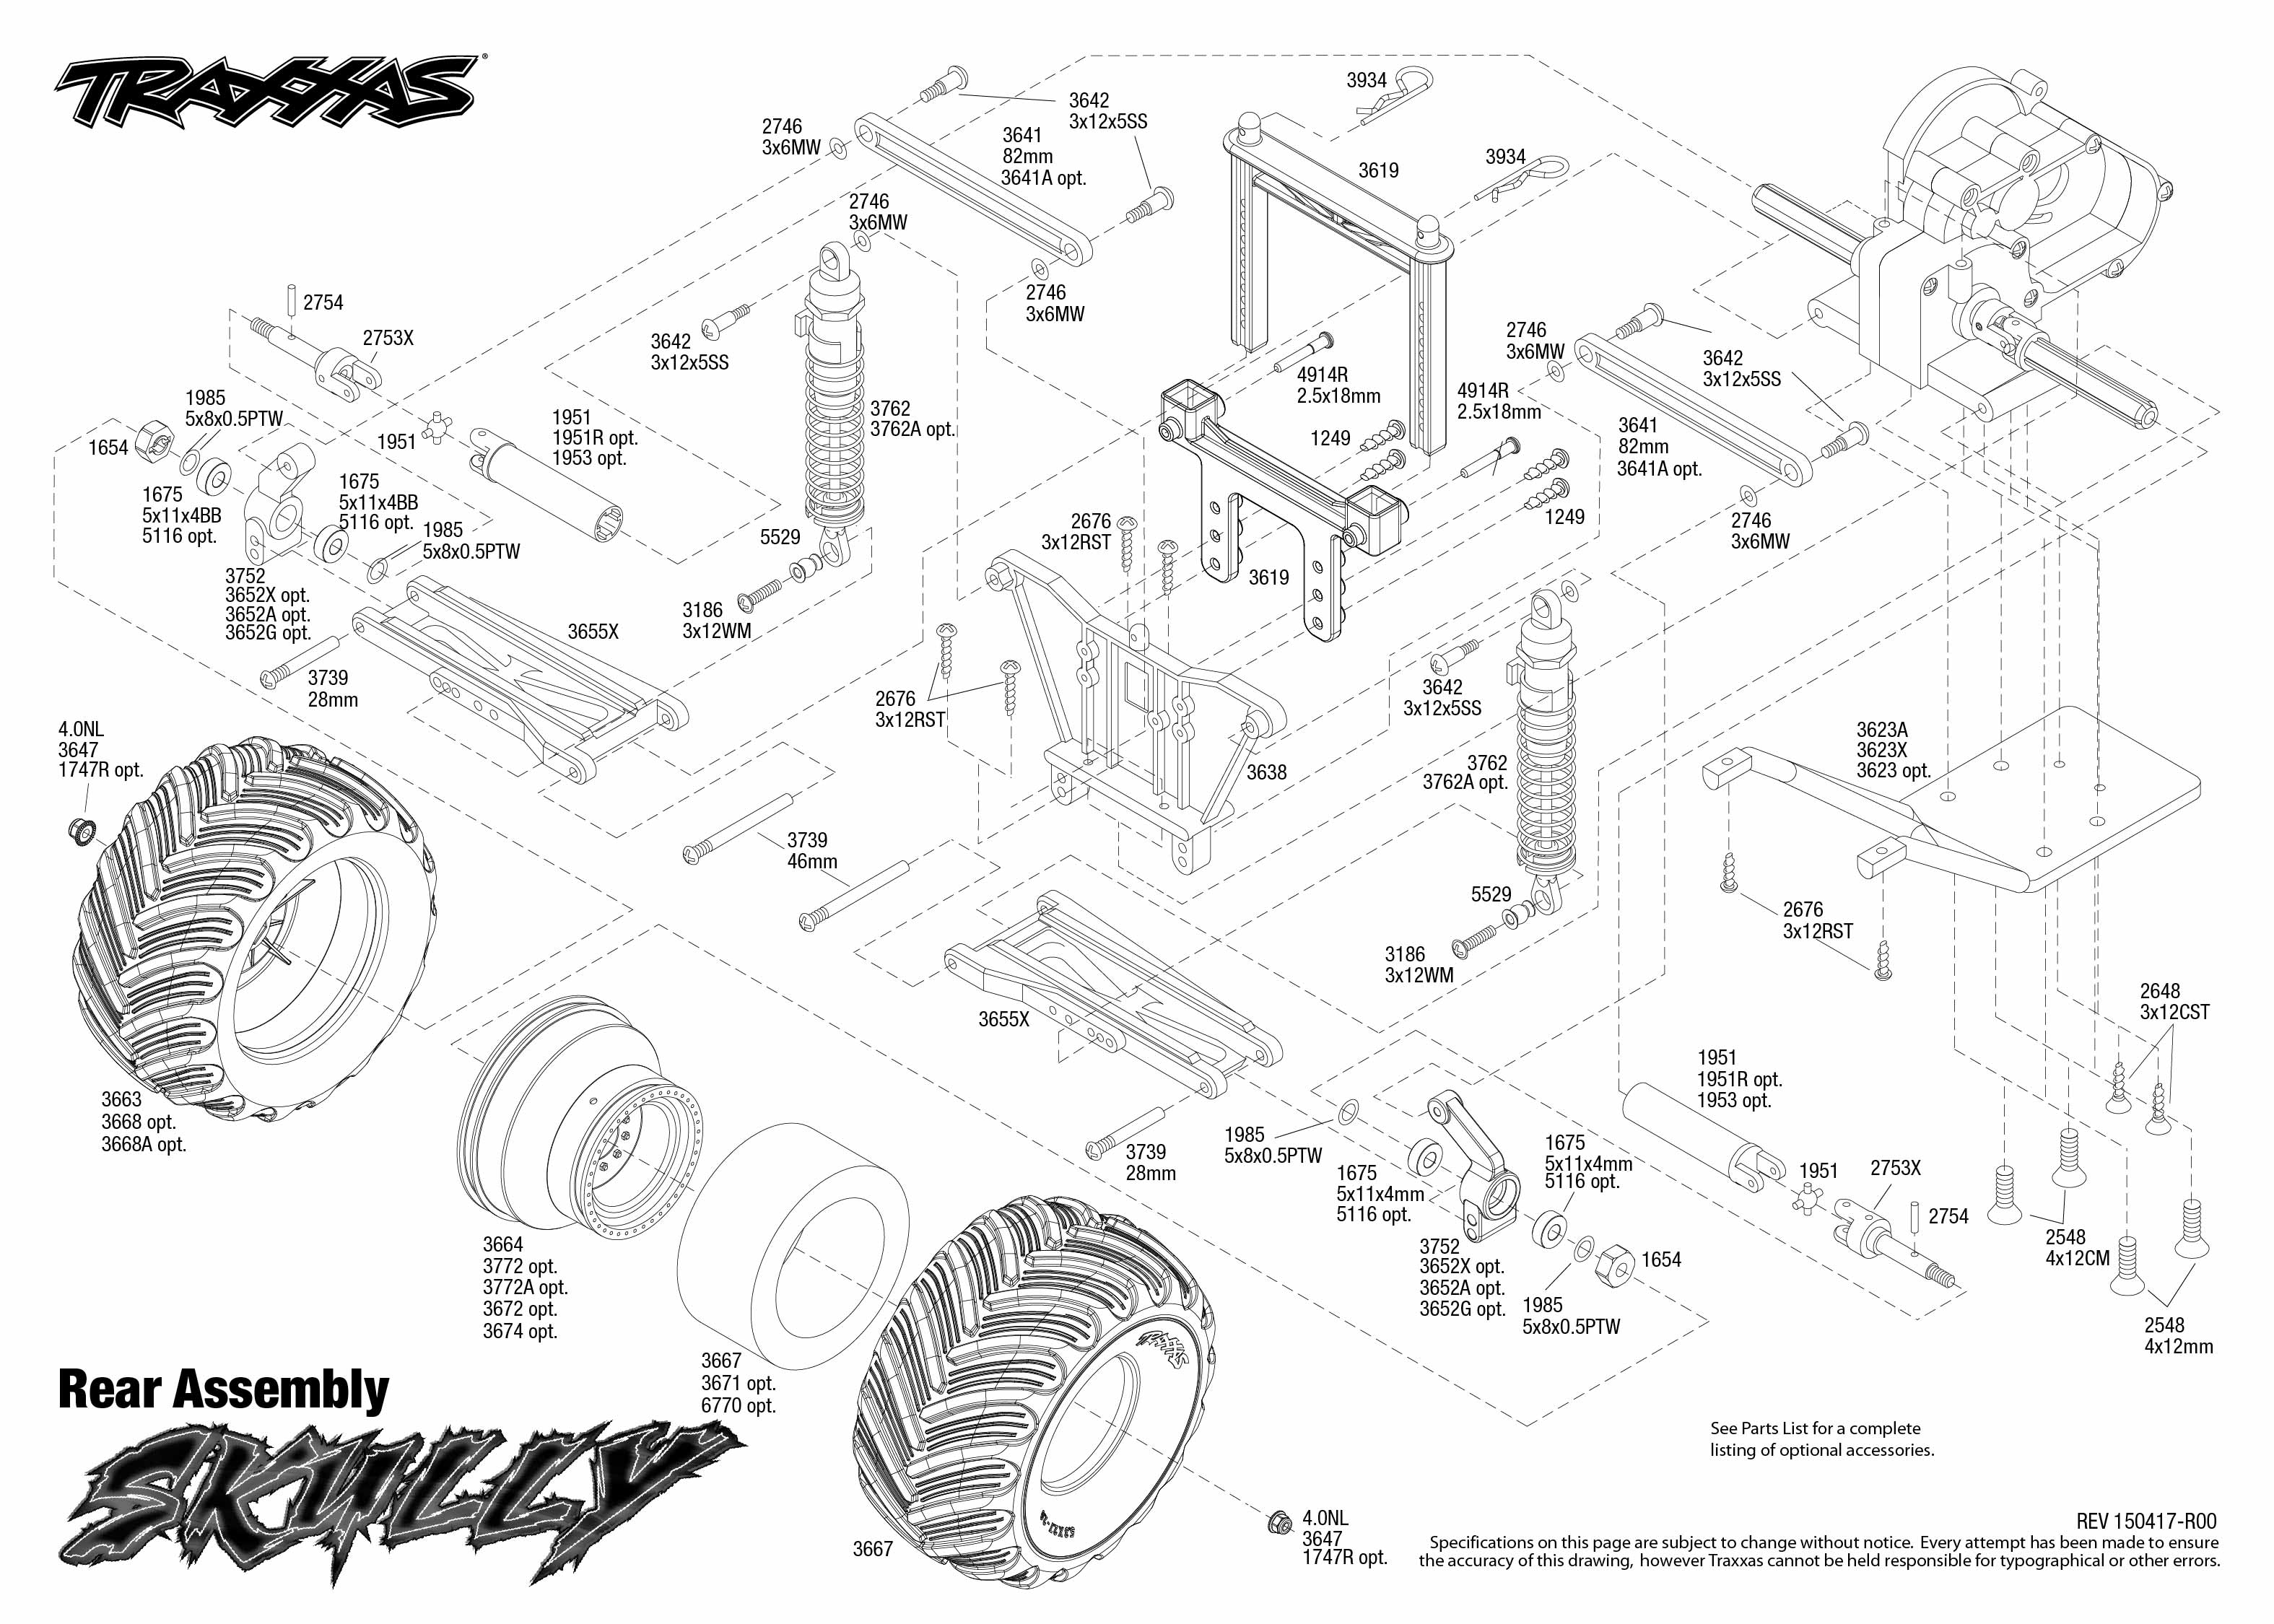 Tiger Helicopter Diagram Wiring Diagrams Parts Traxxas Craniac Rtr Xl 5 Trx36094 1 Jet Engine